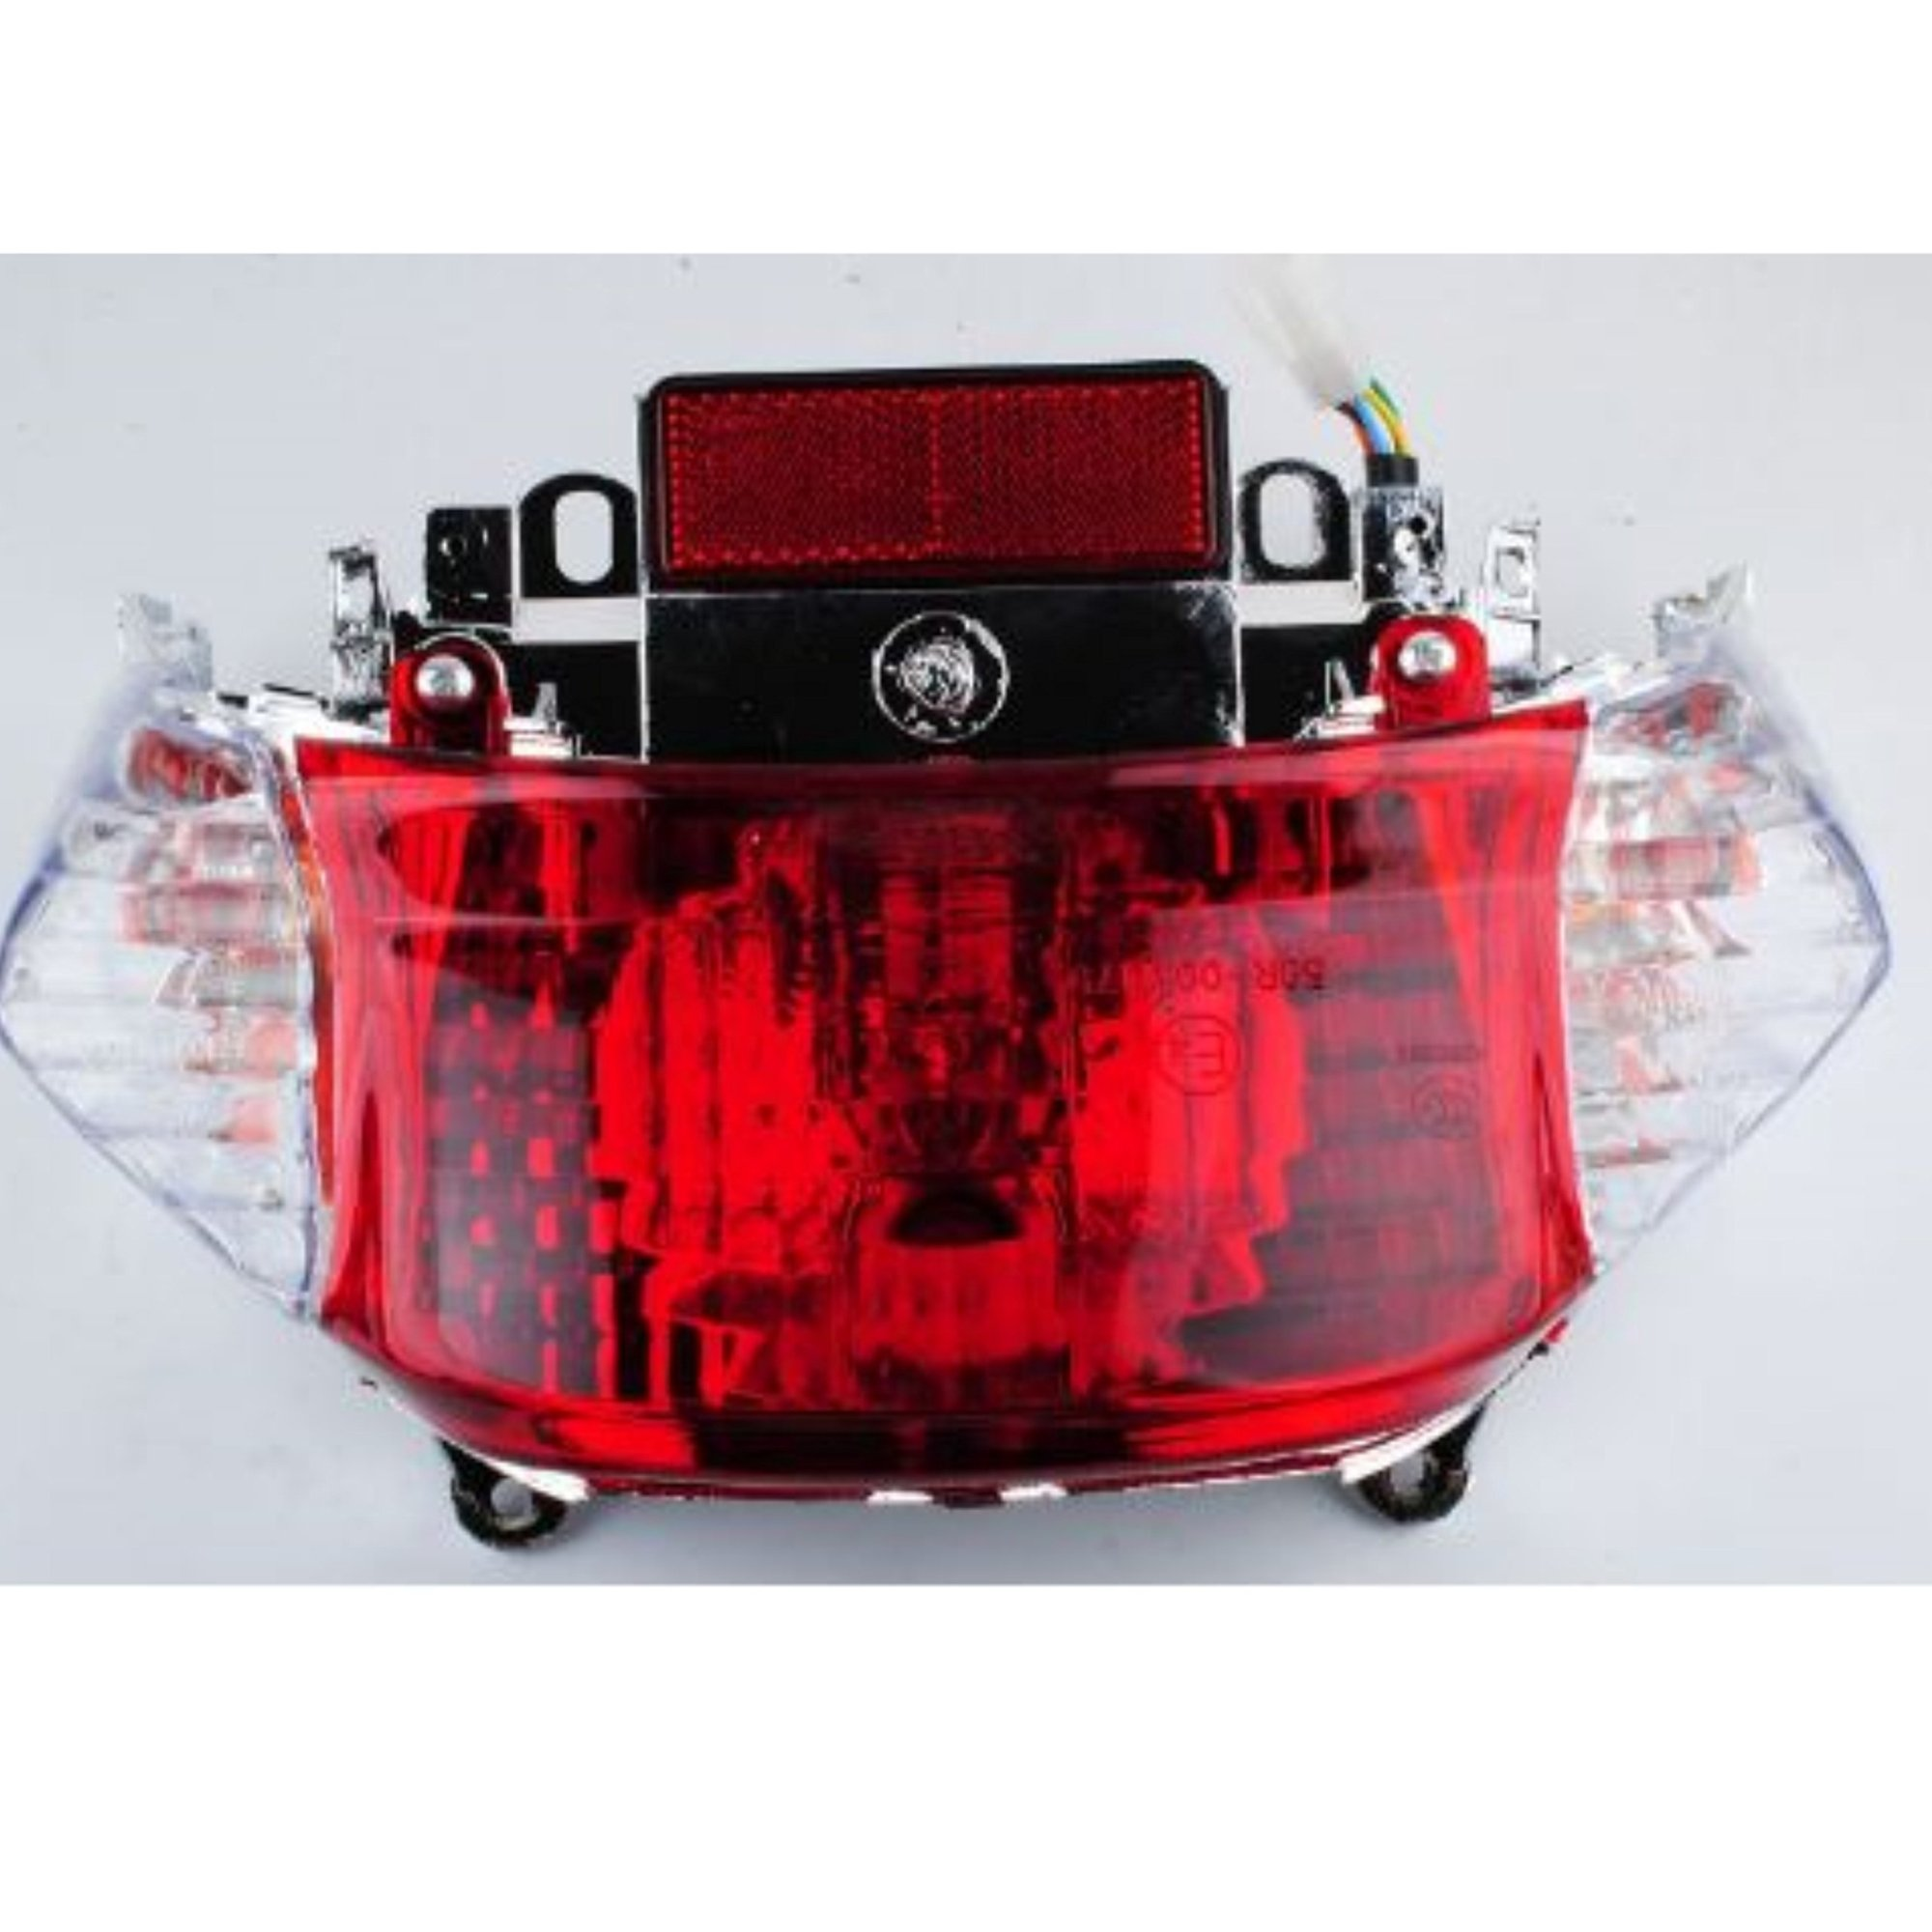 hight resolution of gy6 50cc scooter tail light assembly chinese scooter parts tao tao peace sports